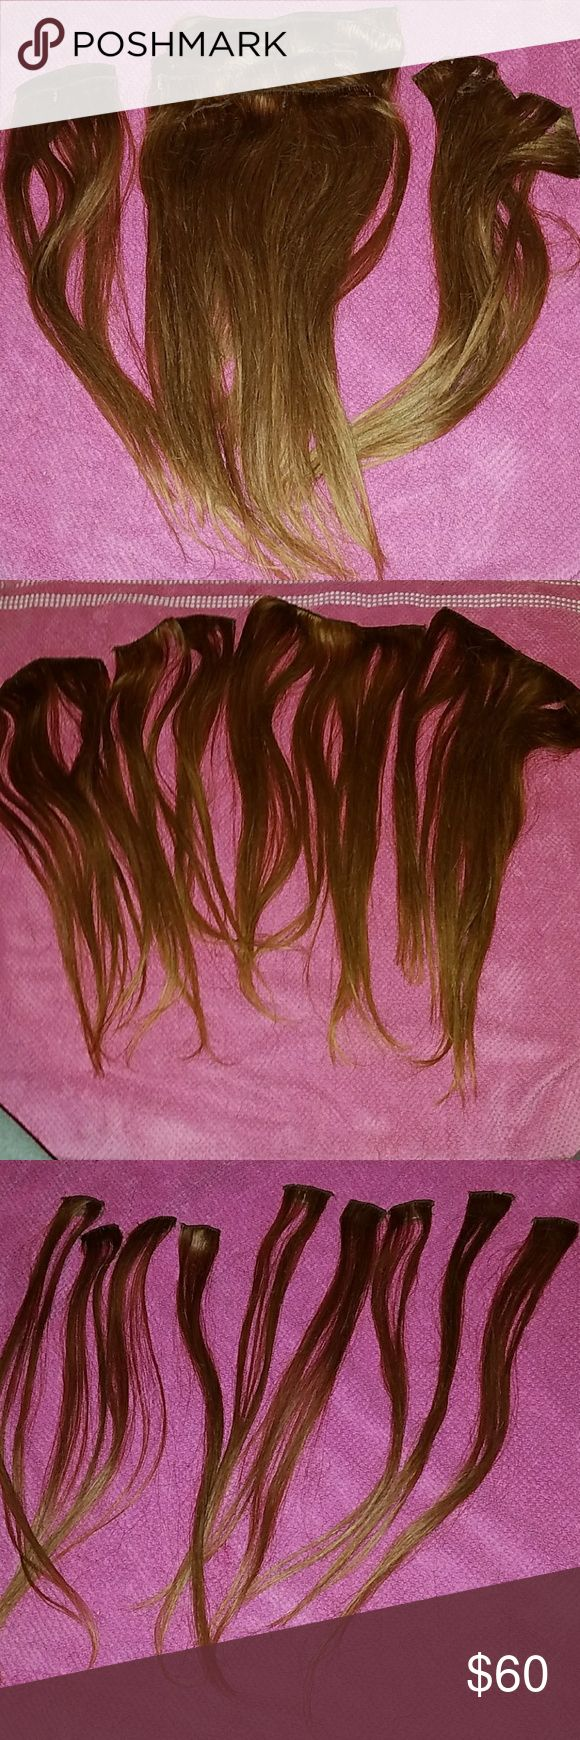 100% Clip In Human Hair Extensions WILL SHIP 2DAY! 2 SETS for full head,18 Inches,Color Light Golden Brown  (Way prettier in person!!) 15 Wefts (pieces) 9 single wefts w 1 clip,2 Wefts w 2 clips & 5 Wefts with 3 clips. These extensions had red tint so I cancelled out red w a golden brown.these r gorgeous & great deal! Wefts r full not thin at all.They have been shampooed, deep Conditioned,Salon oil treatment &  ironed ready to b shipped!!😀😍🤗 (The color does not look same as pics. Check…